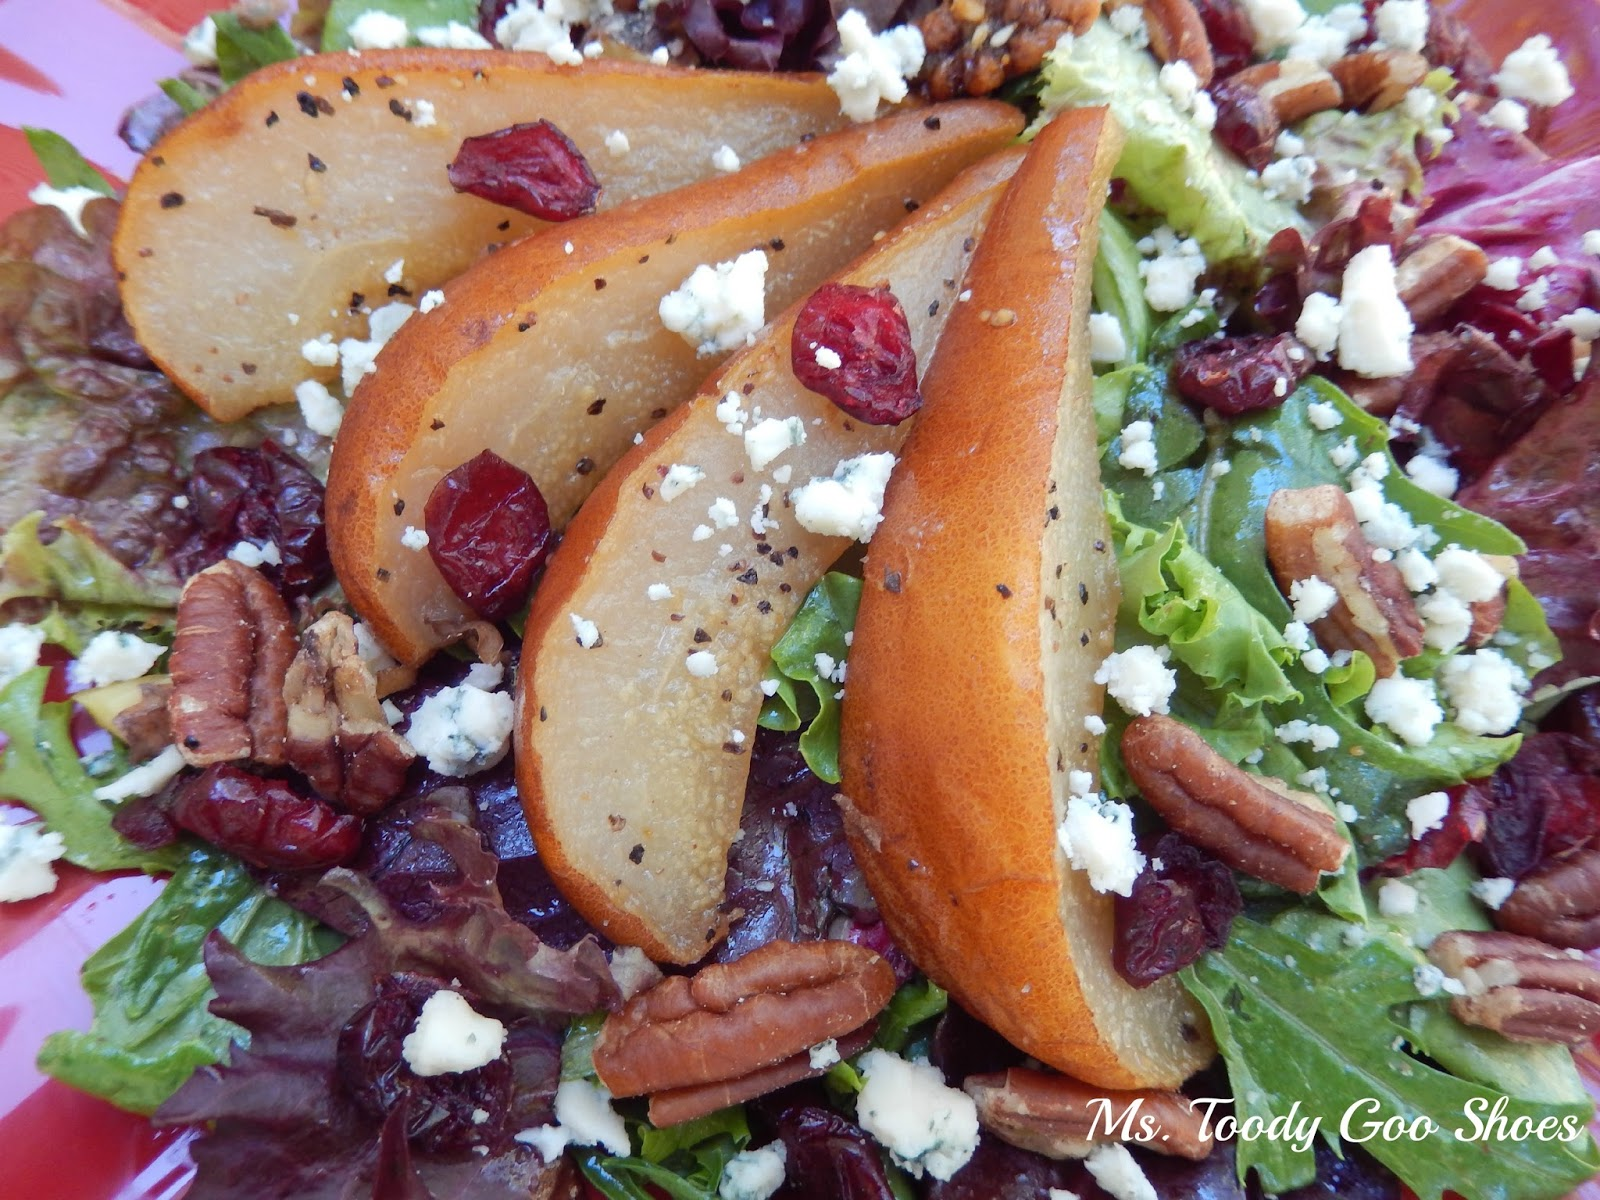 Roasted Pear Salad with White Balsamic Vinaigrette by Ms. Toody Goo Shoes